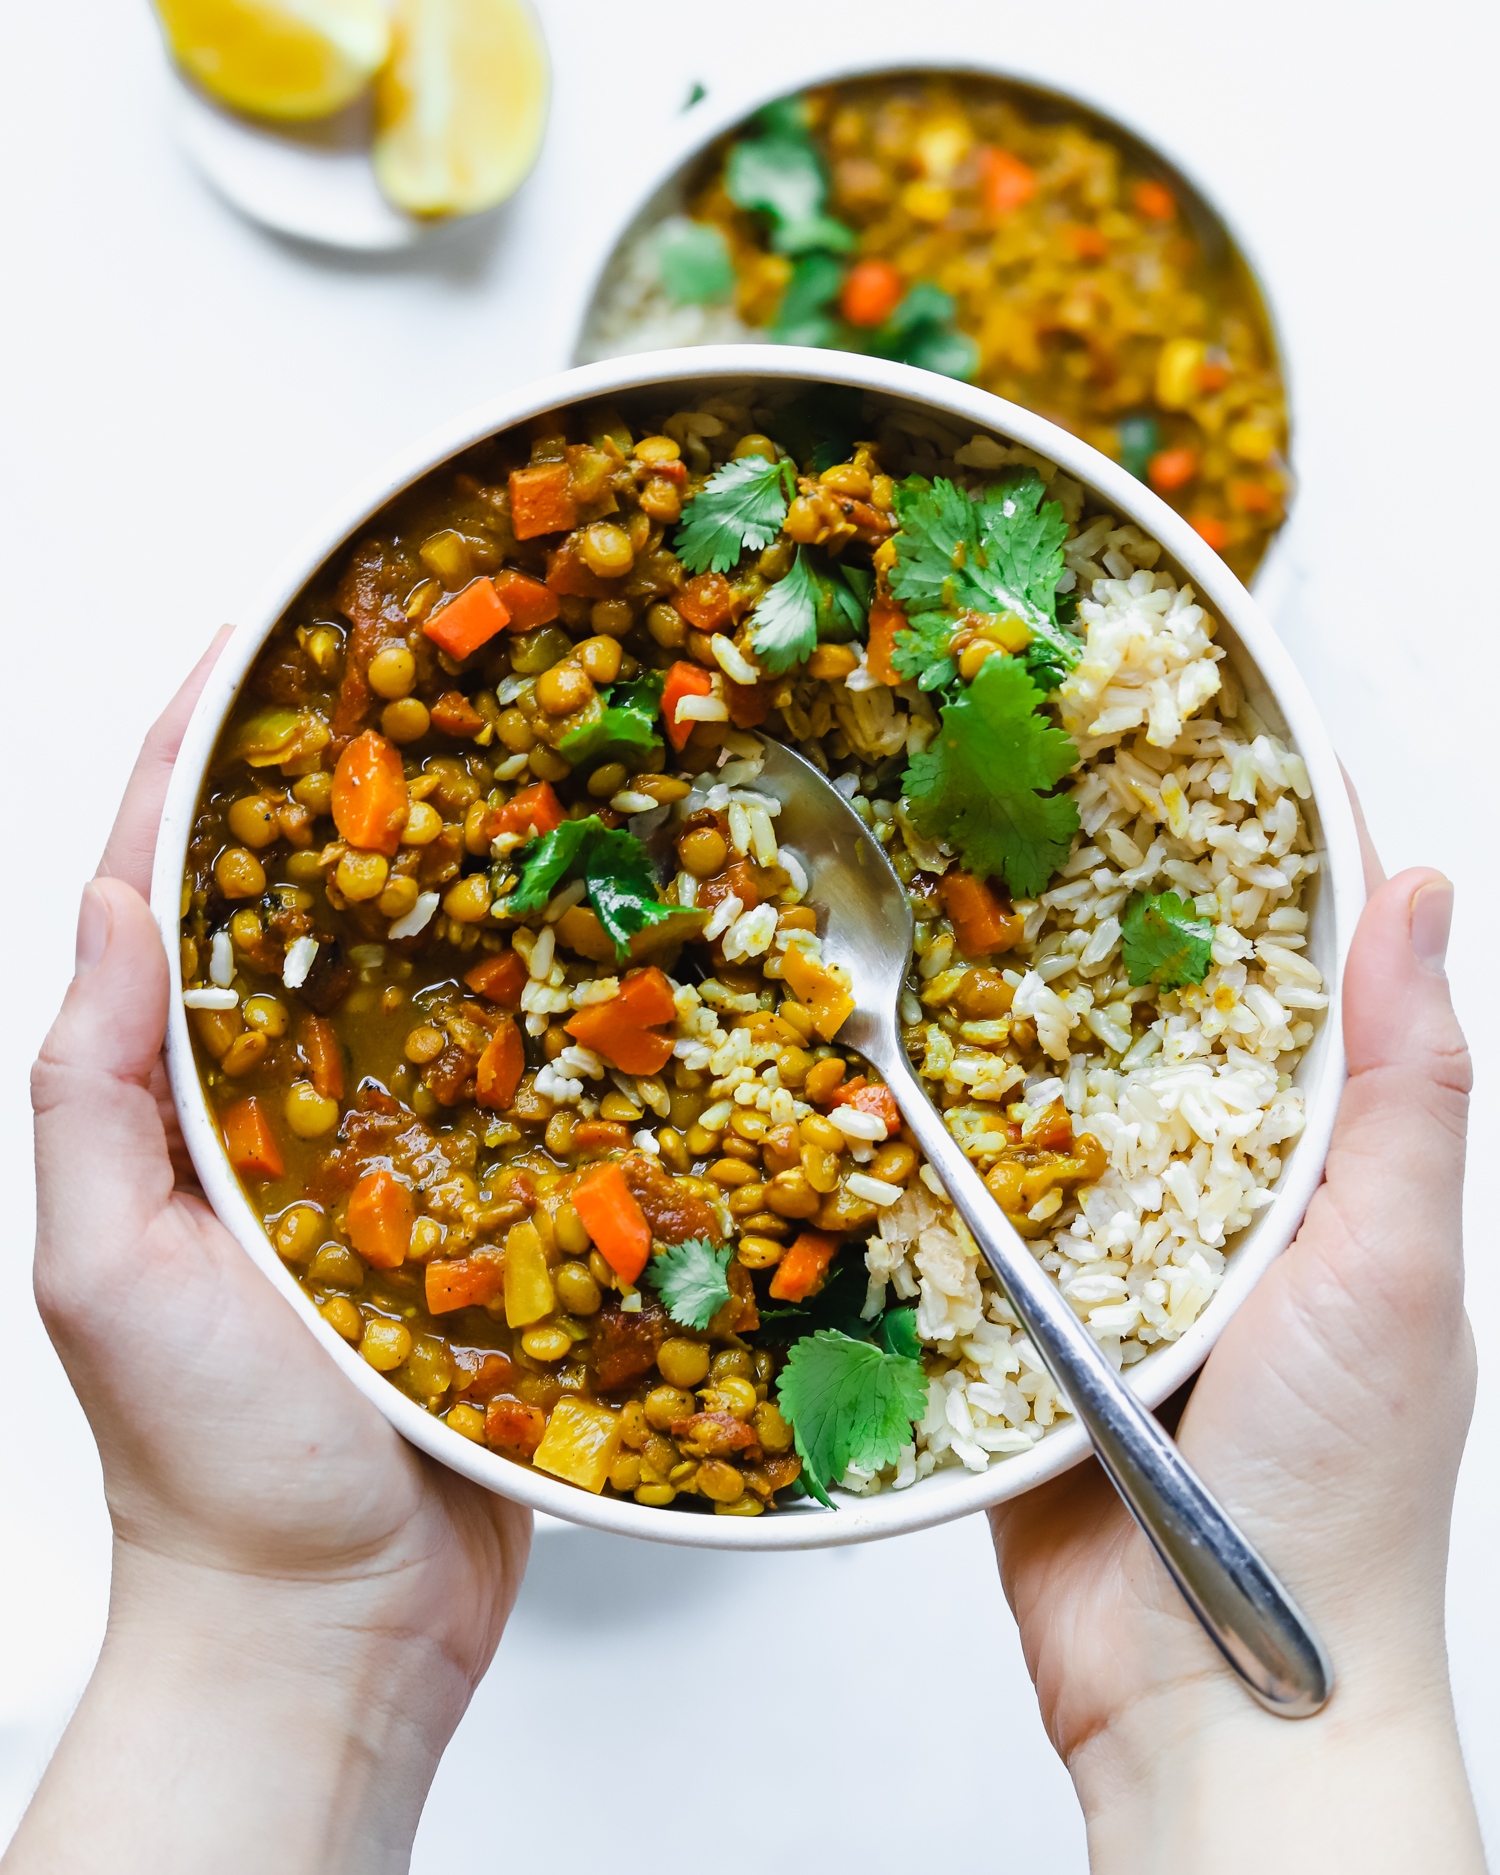 Holding a warm, comforting bowl of lentil curry, rice, and cilantro.